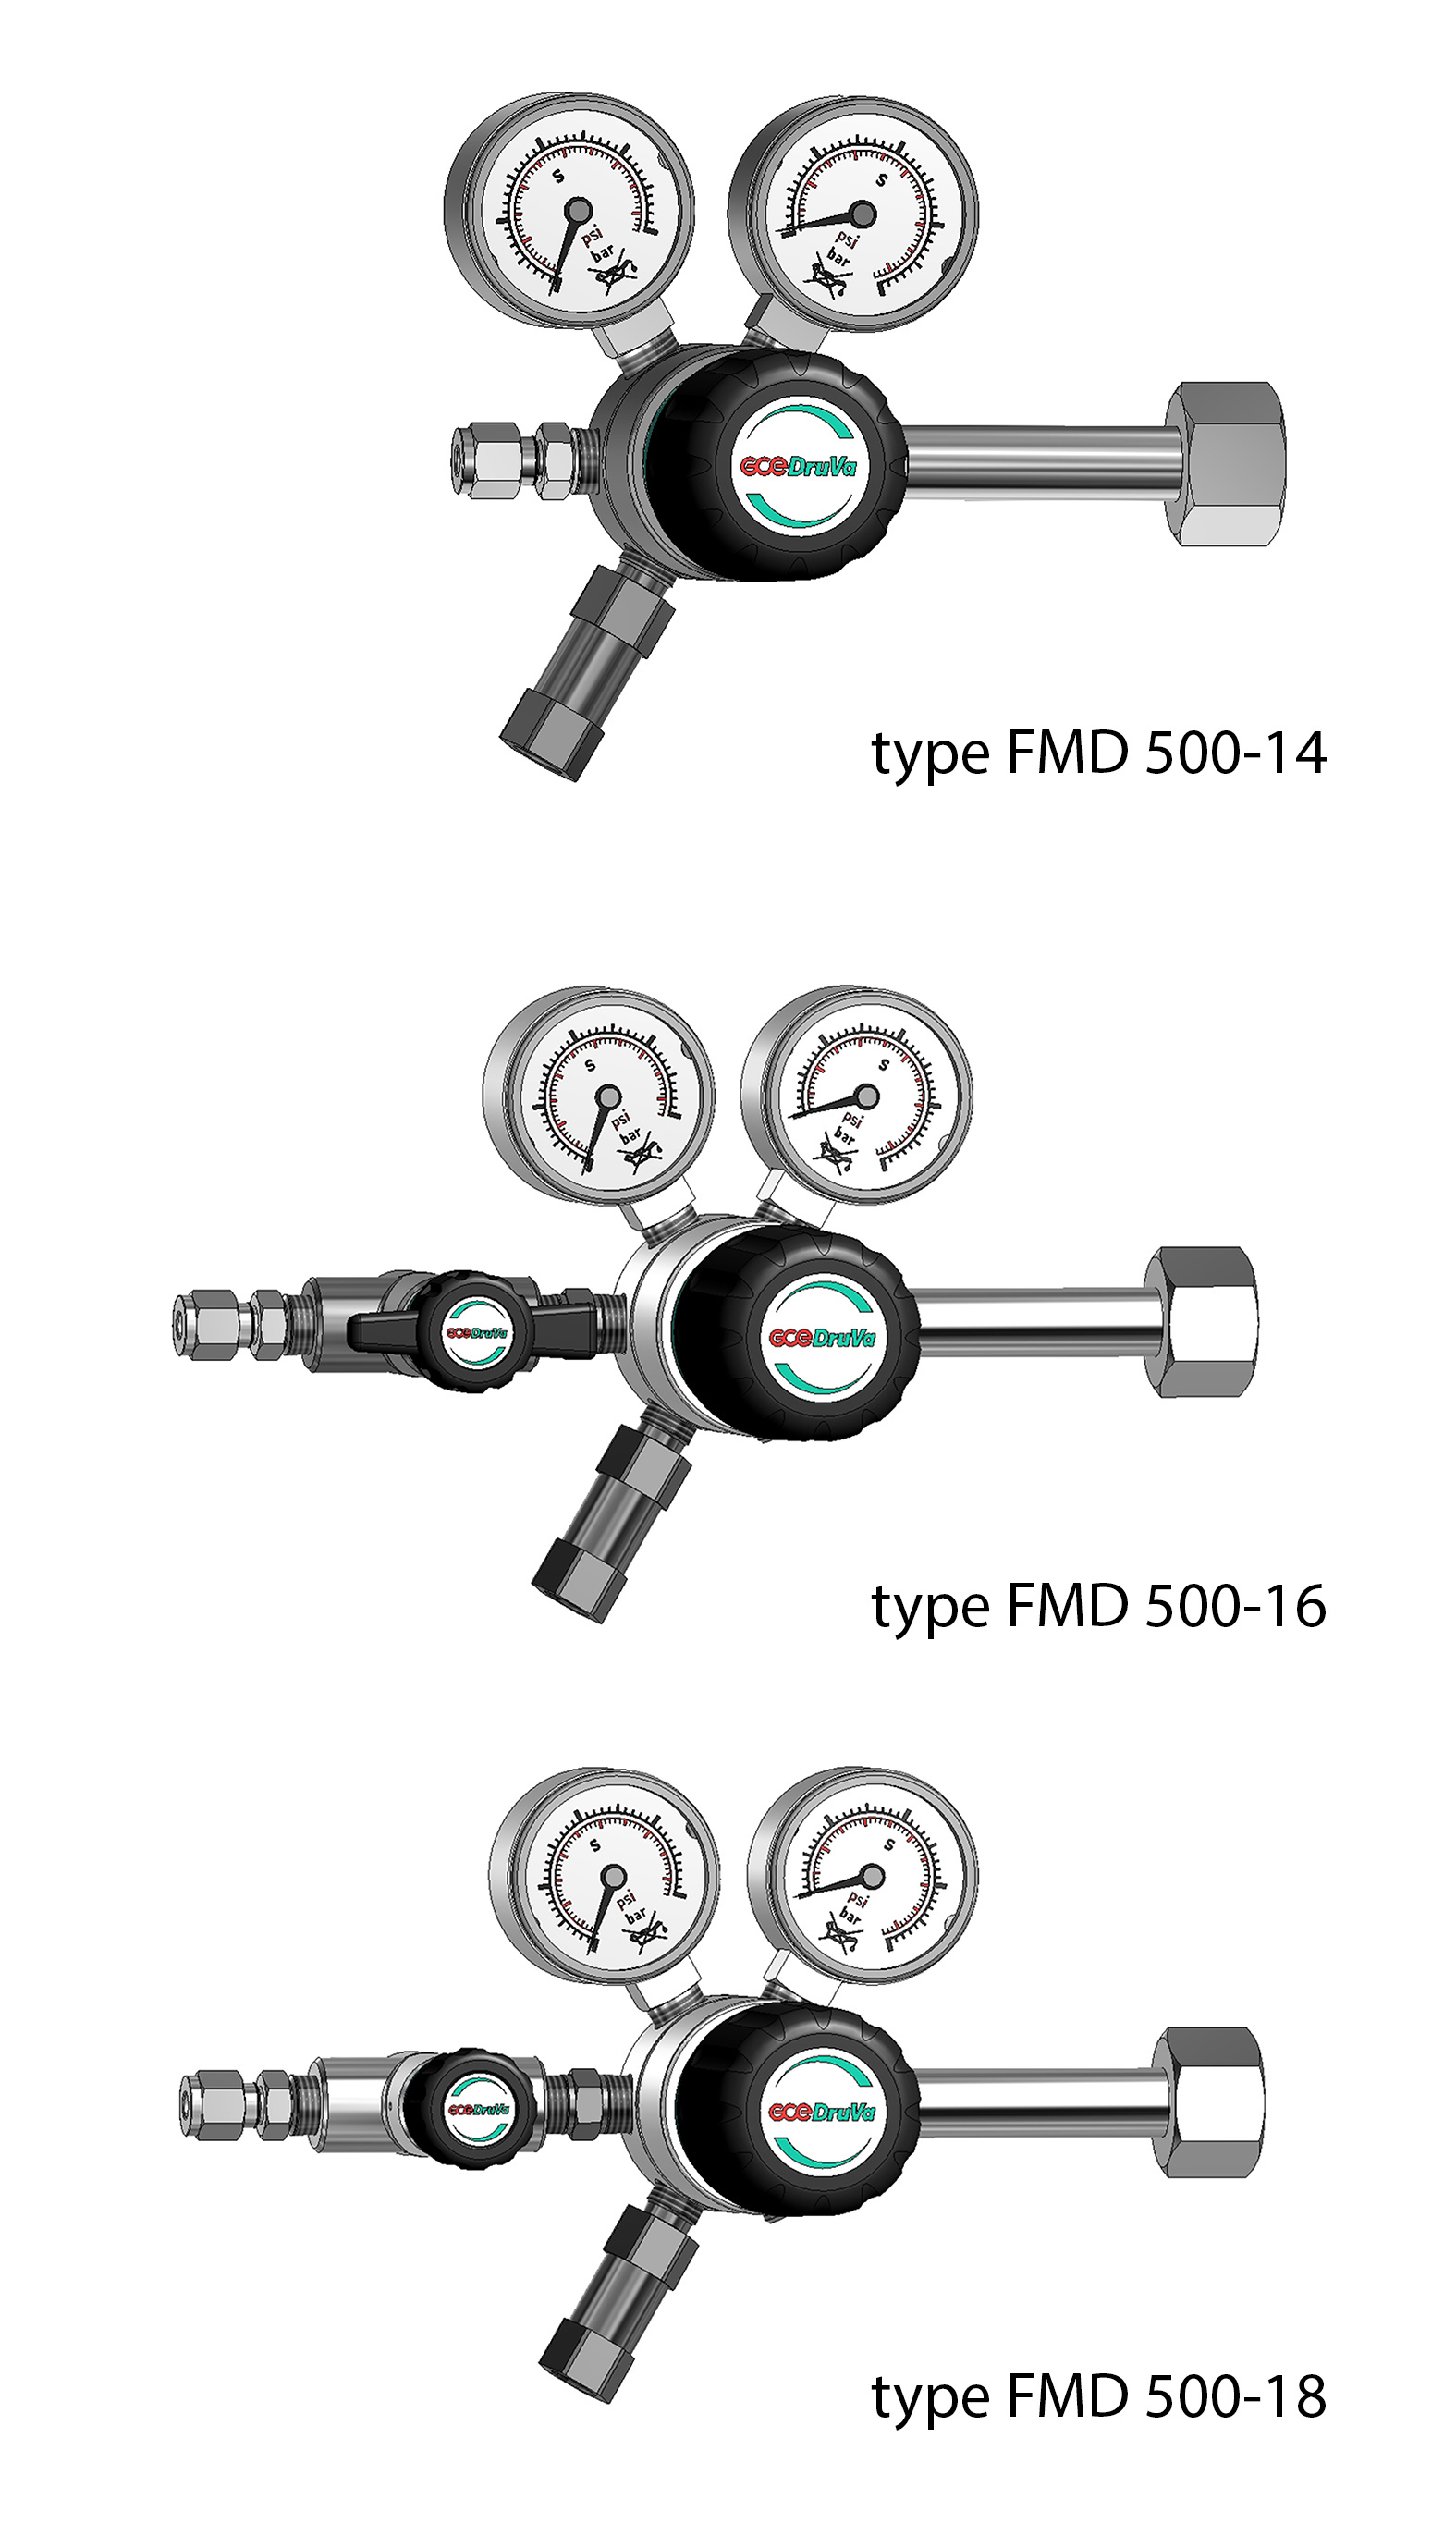 FMD 500 SINGLE STAGE REGULATOR 6.0 page image